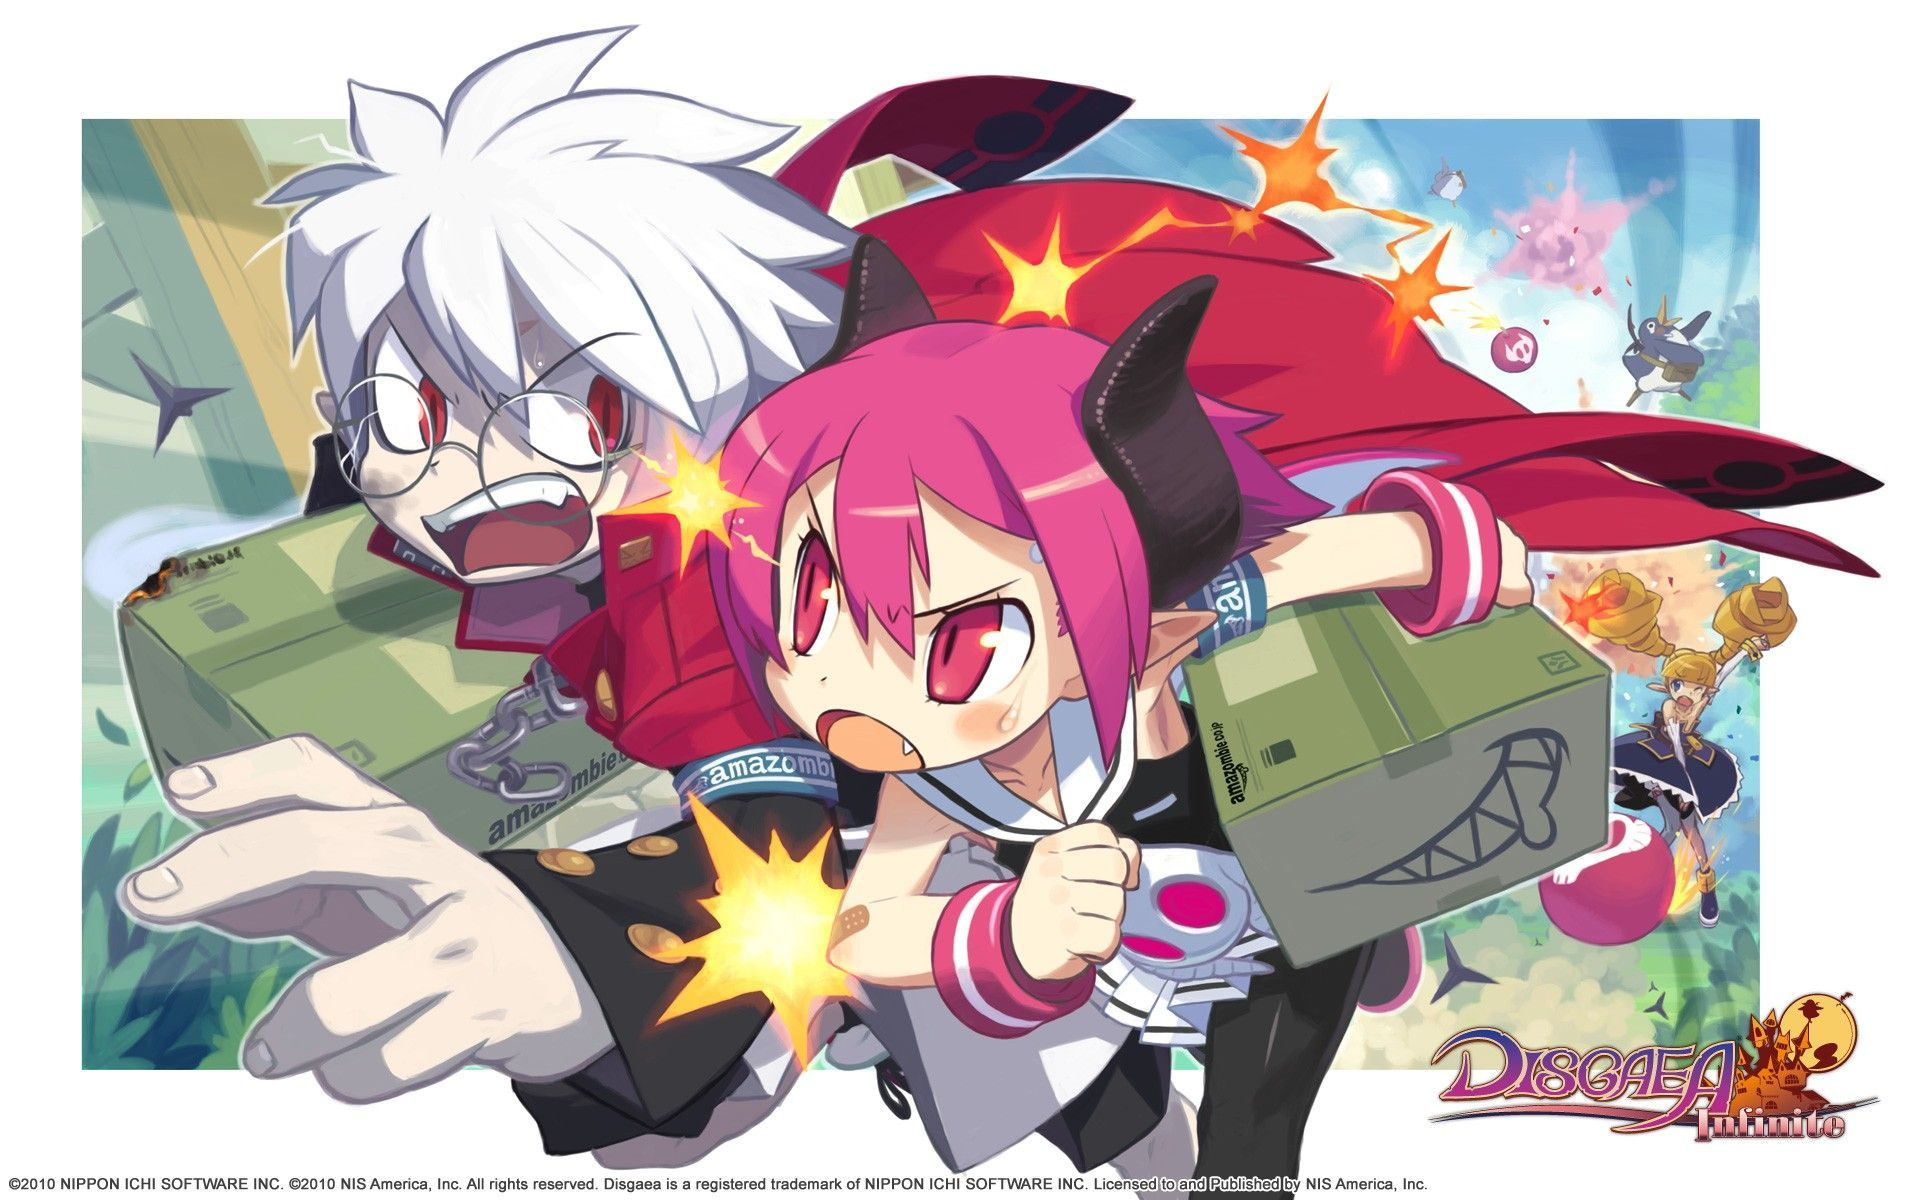 Disgaea Wallpapers - Wallpaper Cave